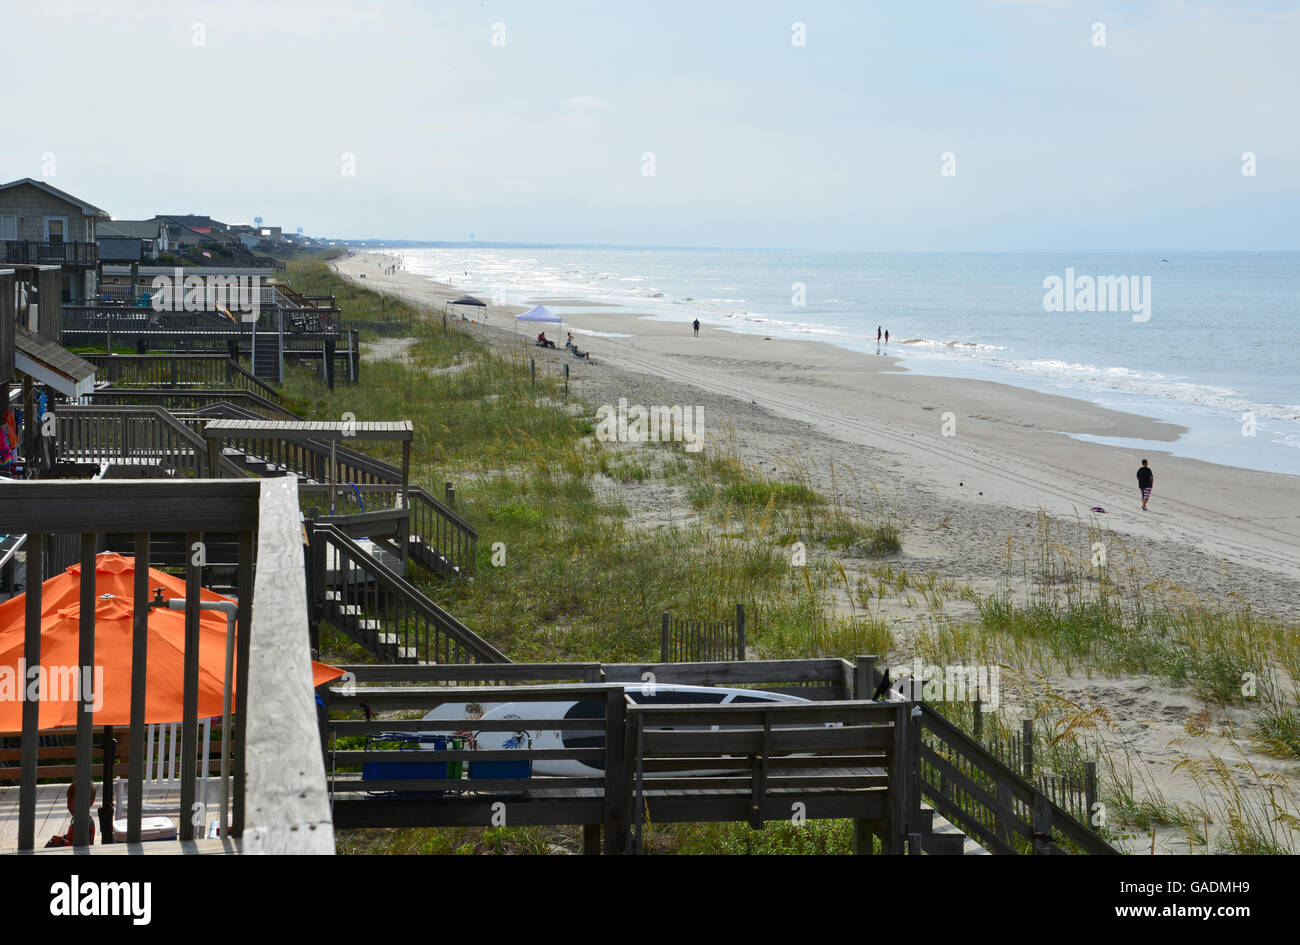 Figures walk and run on the sand at Long Beach, Oak Island NC, early in the morning. - Stock Image